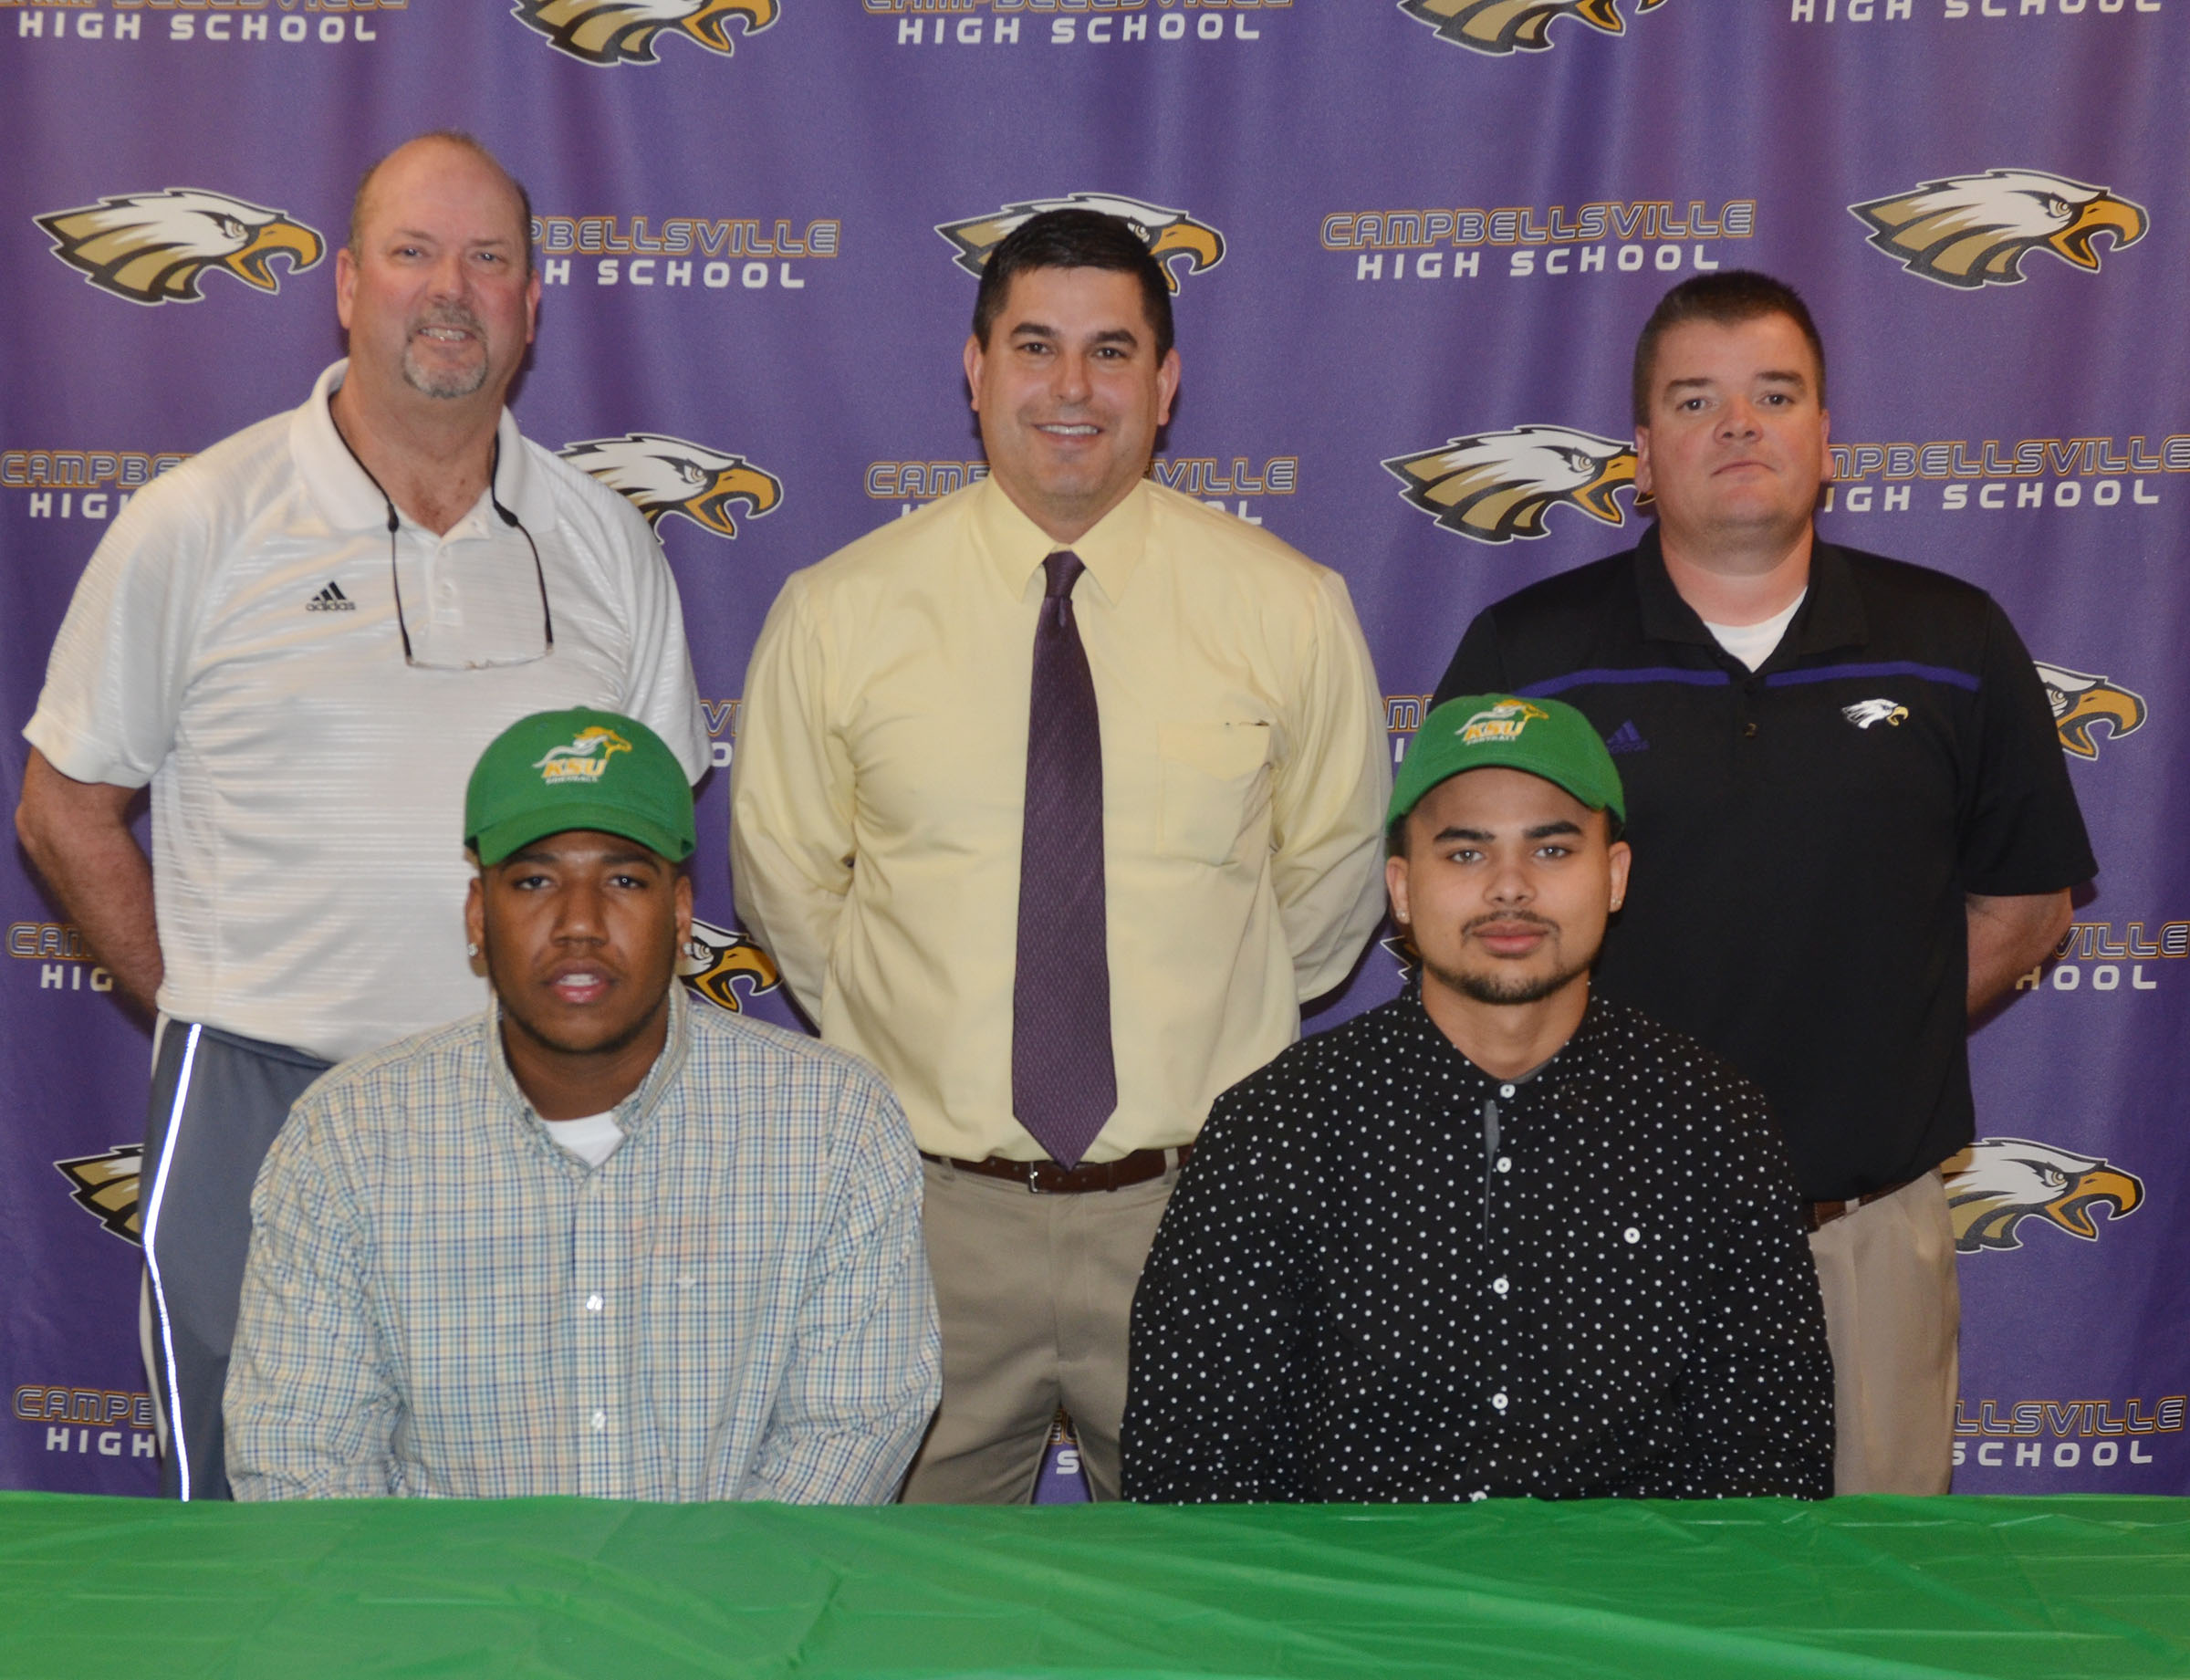 CHS seniors Micah Corley and Arick Groves will continue their academic and football careers at Kentucky State University this fall. The two signed their letters of intent in a special ceremony on Monday, Feb. 6. In front are Corley, at left, and Groves. In back, from left, are CHS Athletic Director Tim Davis, CHS Principal Kirby Smith and head football coach Dale Estes.